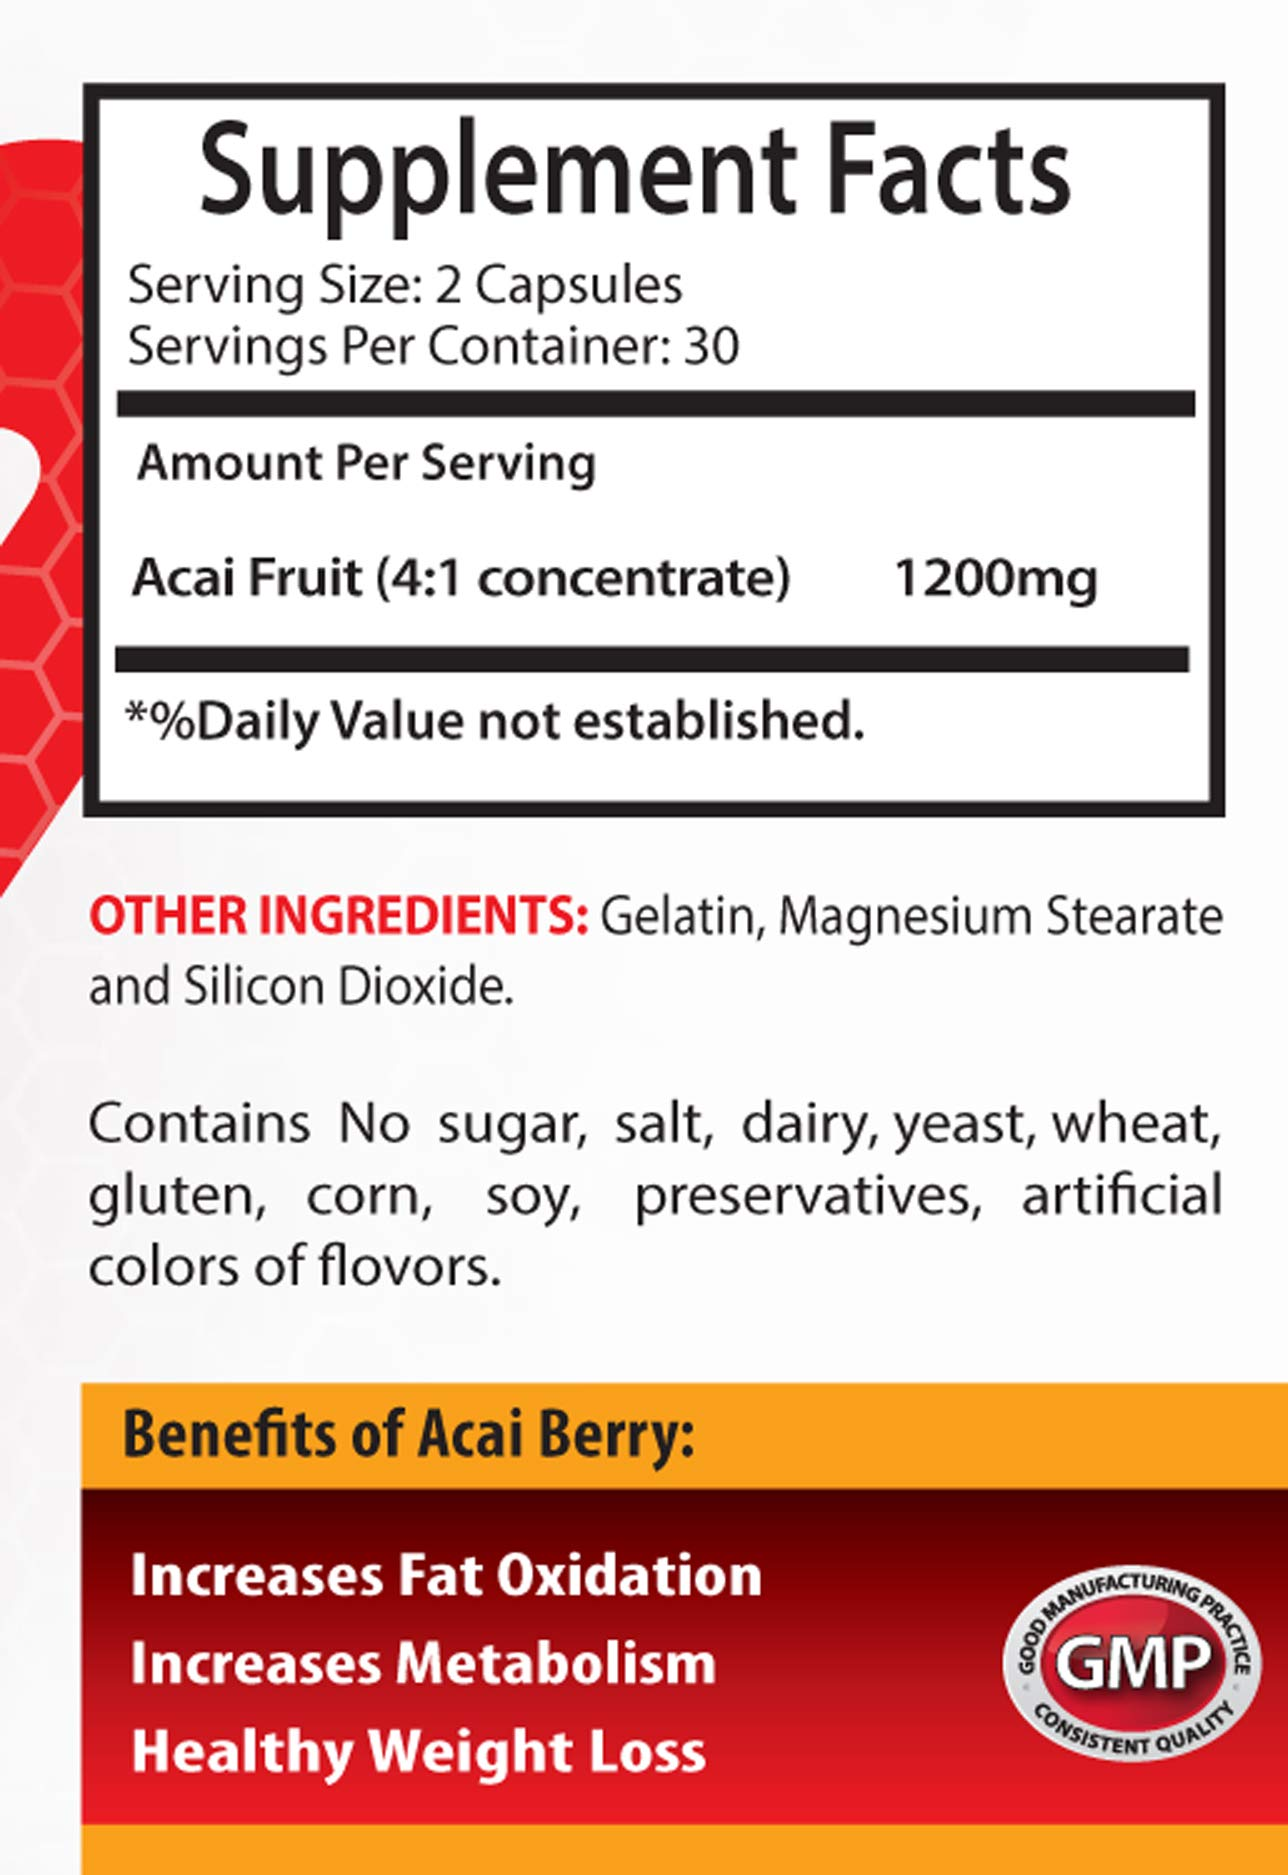 Immune Support Sugar Free - ACAI Berry 1200 MG - Super ANTIOXIDANT - acai Roots Pure acai - 3 Bottles (180 Capsules) by Healthy Supplements LLC (Image #2)